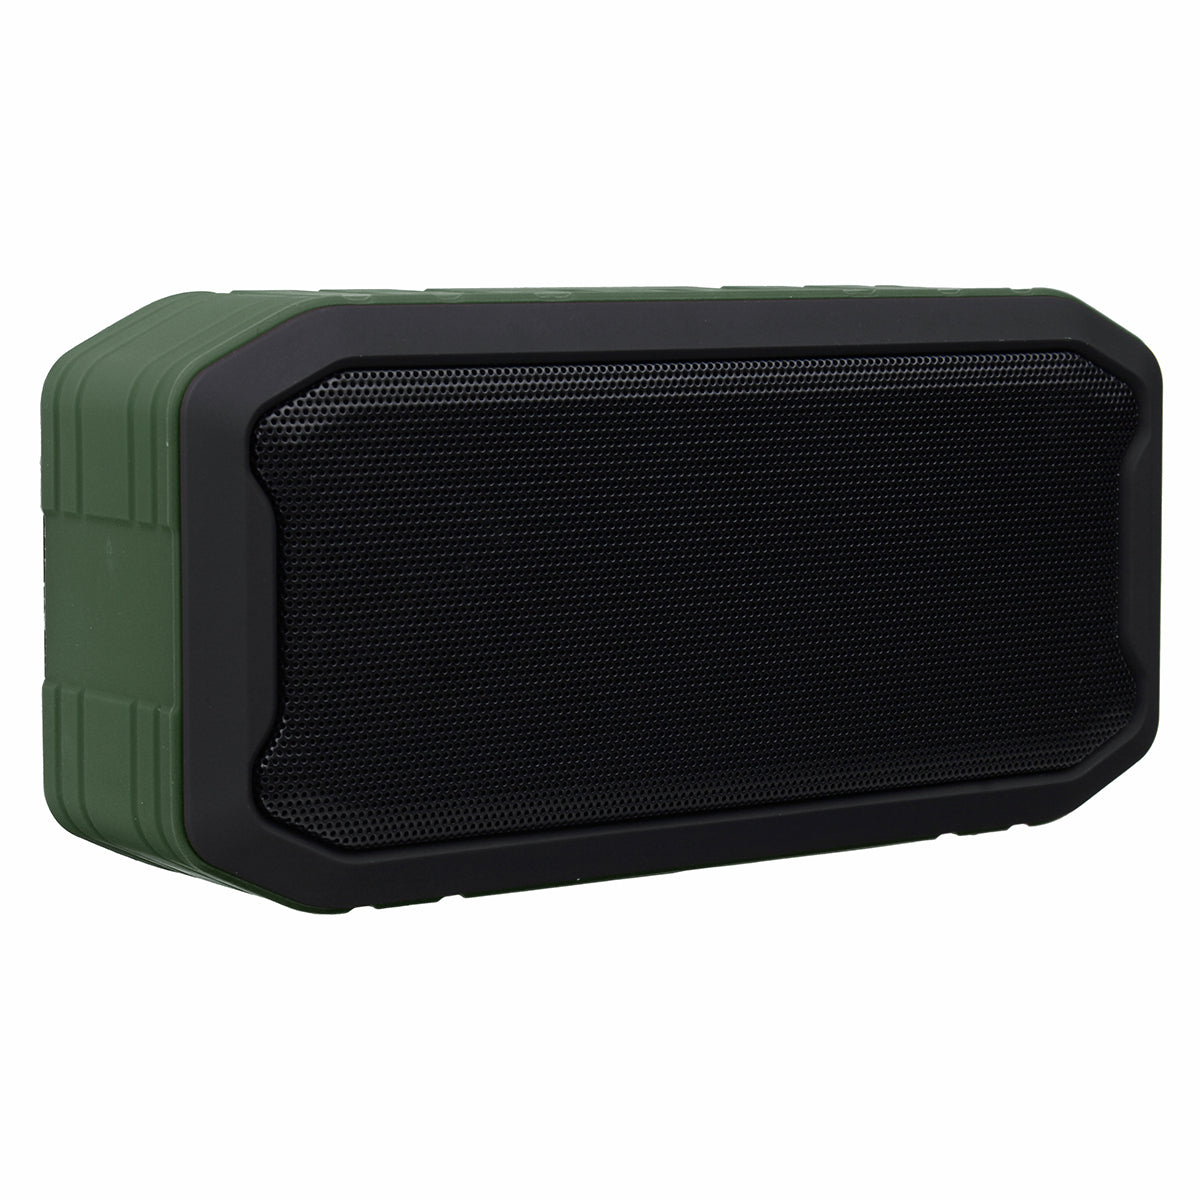 HomeTrendz™ Portable Wireless Bluetooth Speaker Surround Sound Stereo Waterproof Outdoor Speaker with Mic